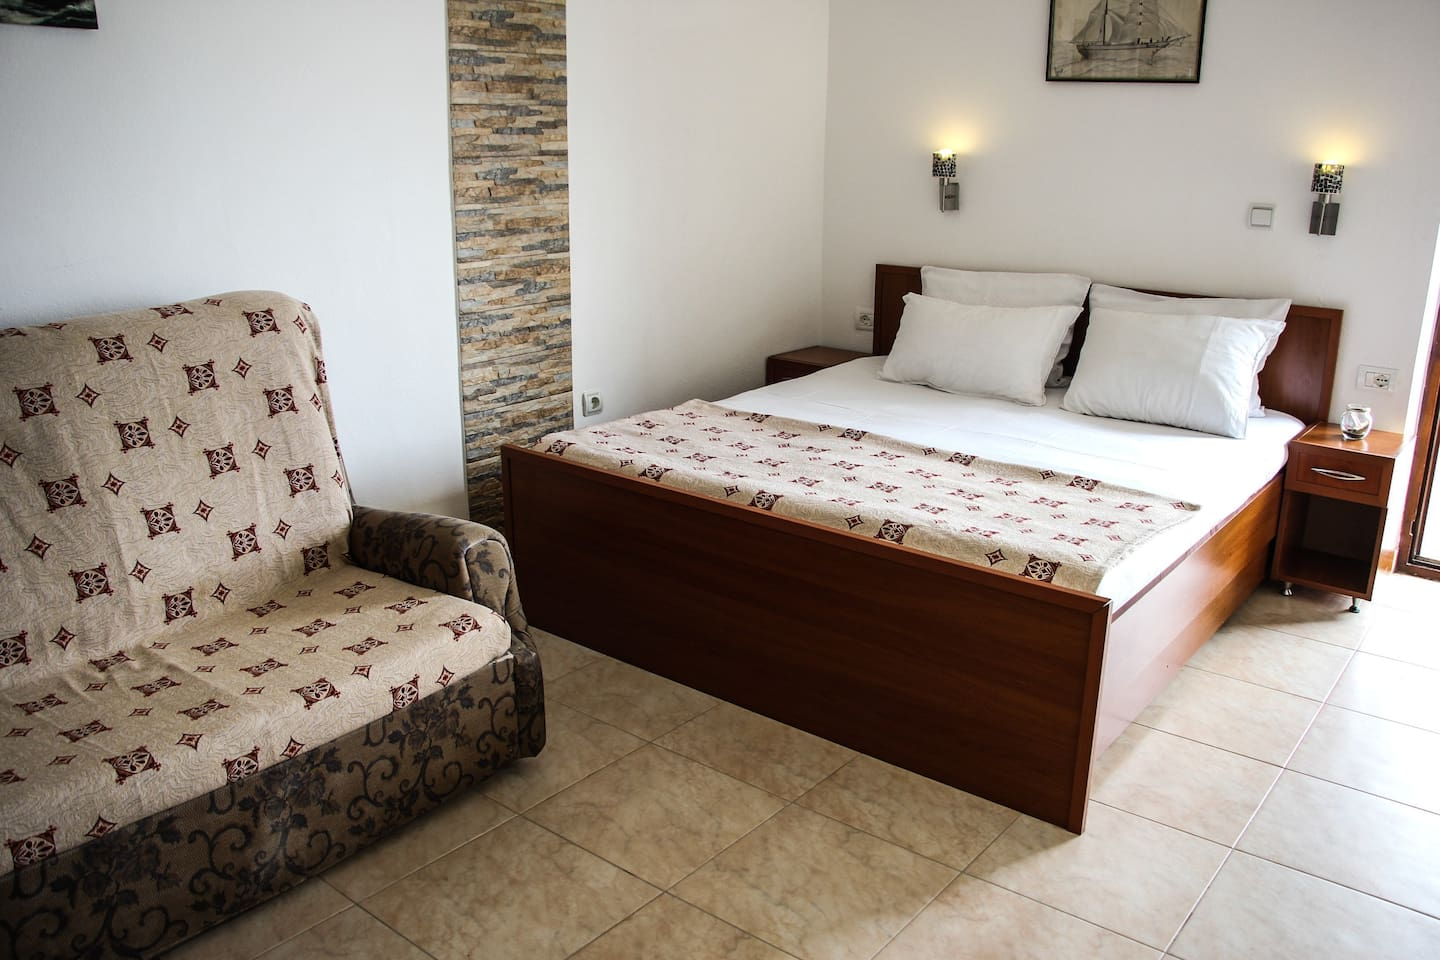 This is a studio apartment. It is a great room for couples, it has a wonderful view of the small beach and part of the old town. The room has a living room area, kitchen, bathroom, terrace, AC and satelite TV. Free parking and Wi-Fi is available to all our guests. This room perfectly describes the style of Ulcinj homes, it is cozy, comfortable, simple and welcoming!